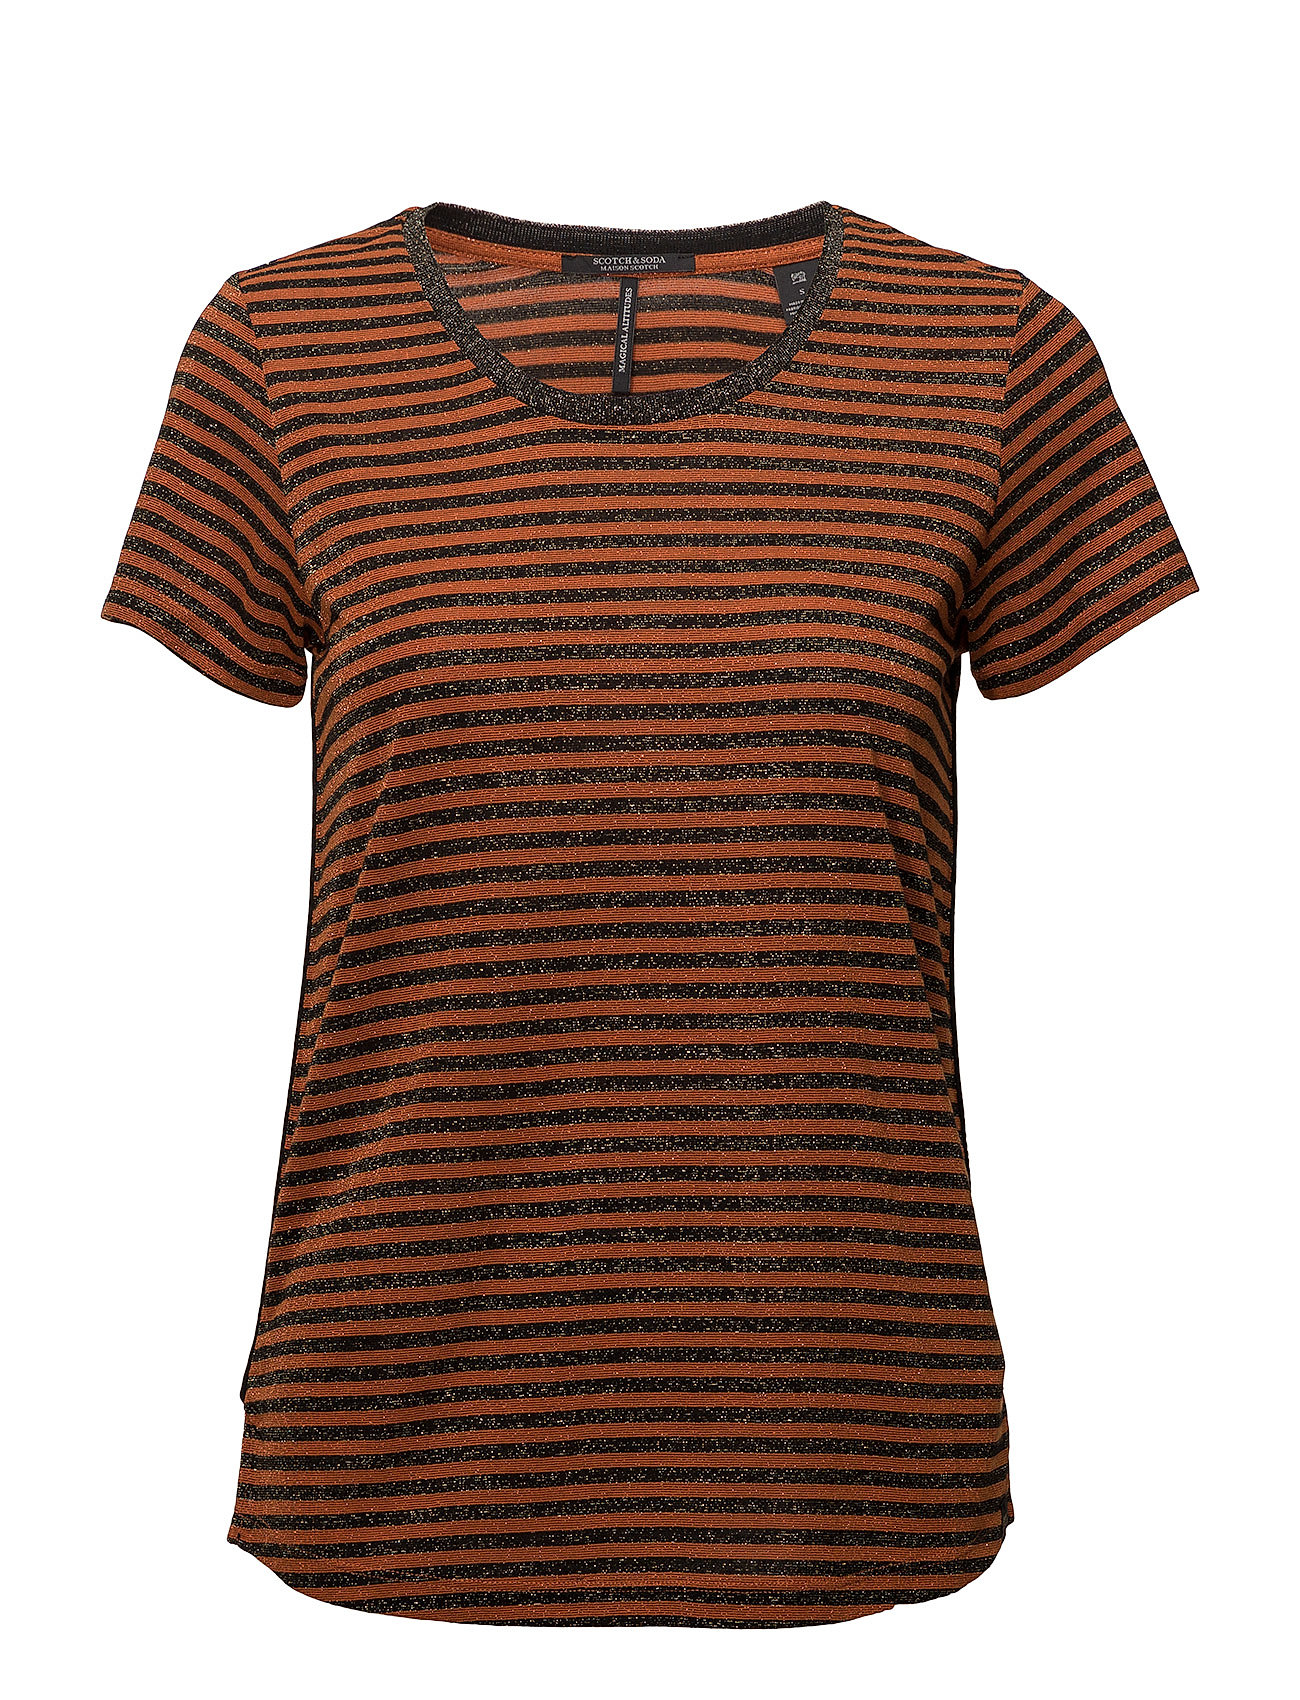 Scotch & Soda Short sleeve crew neck tee with piping details